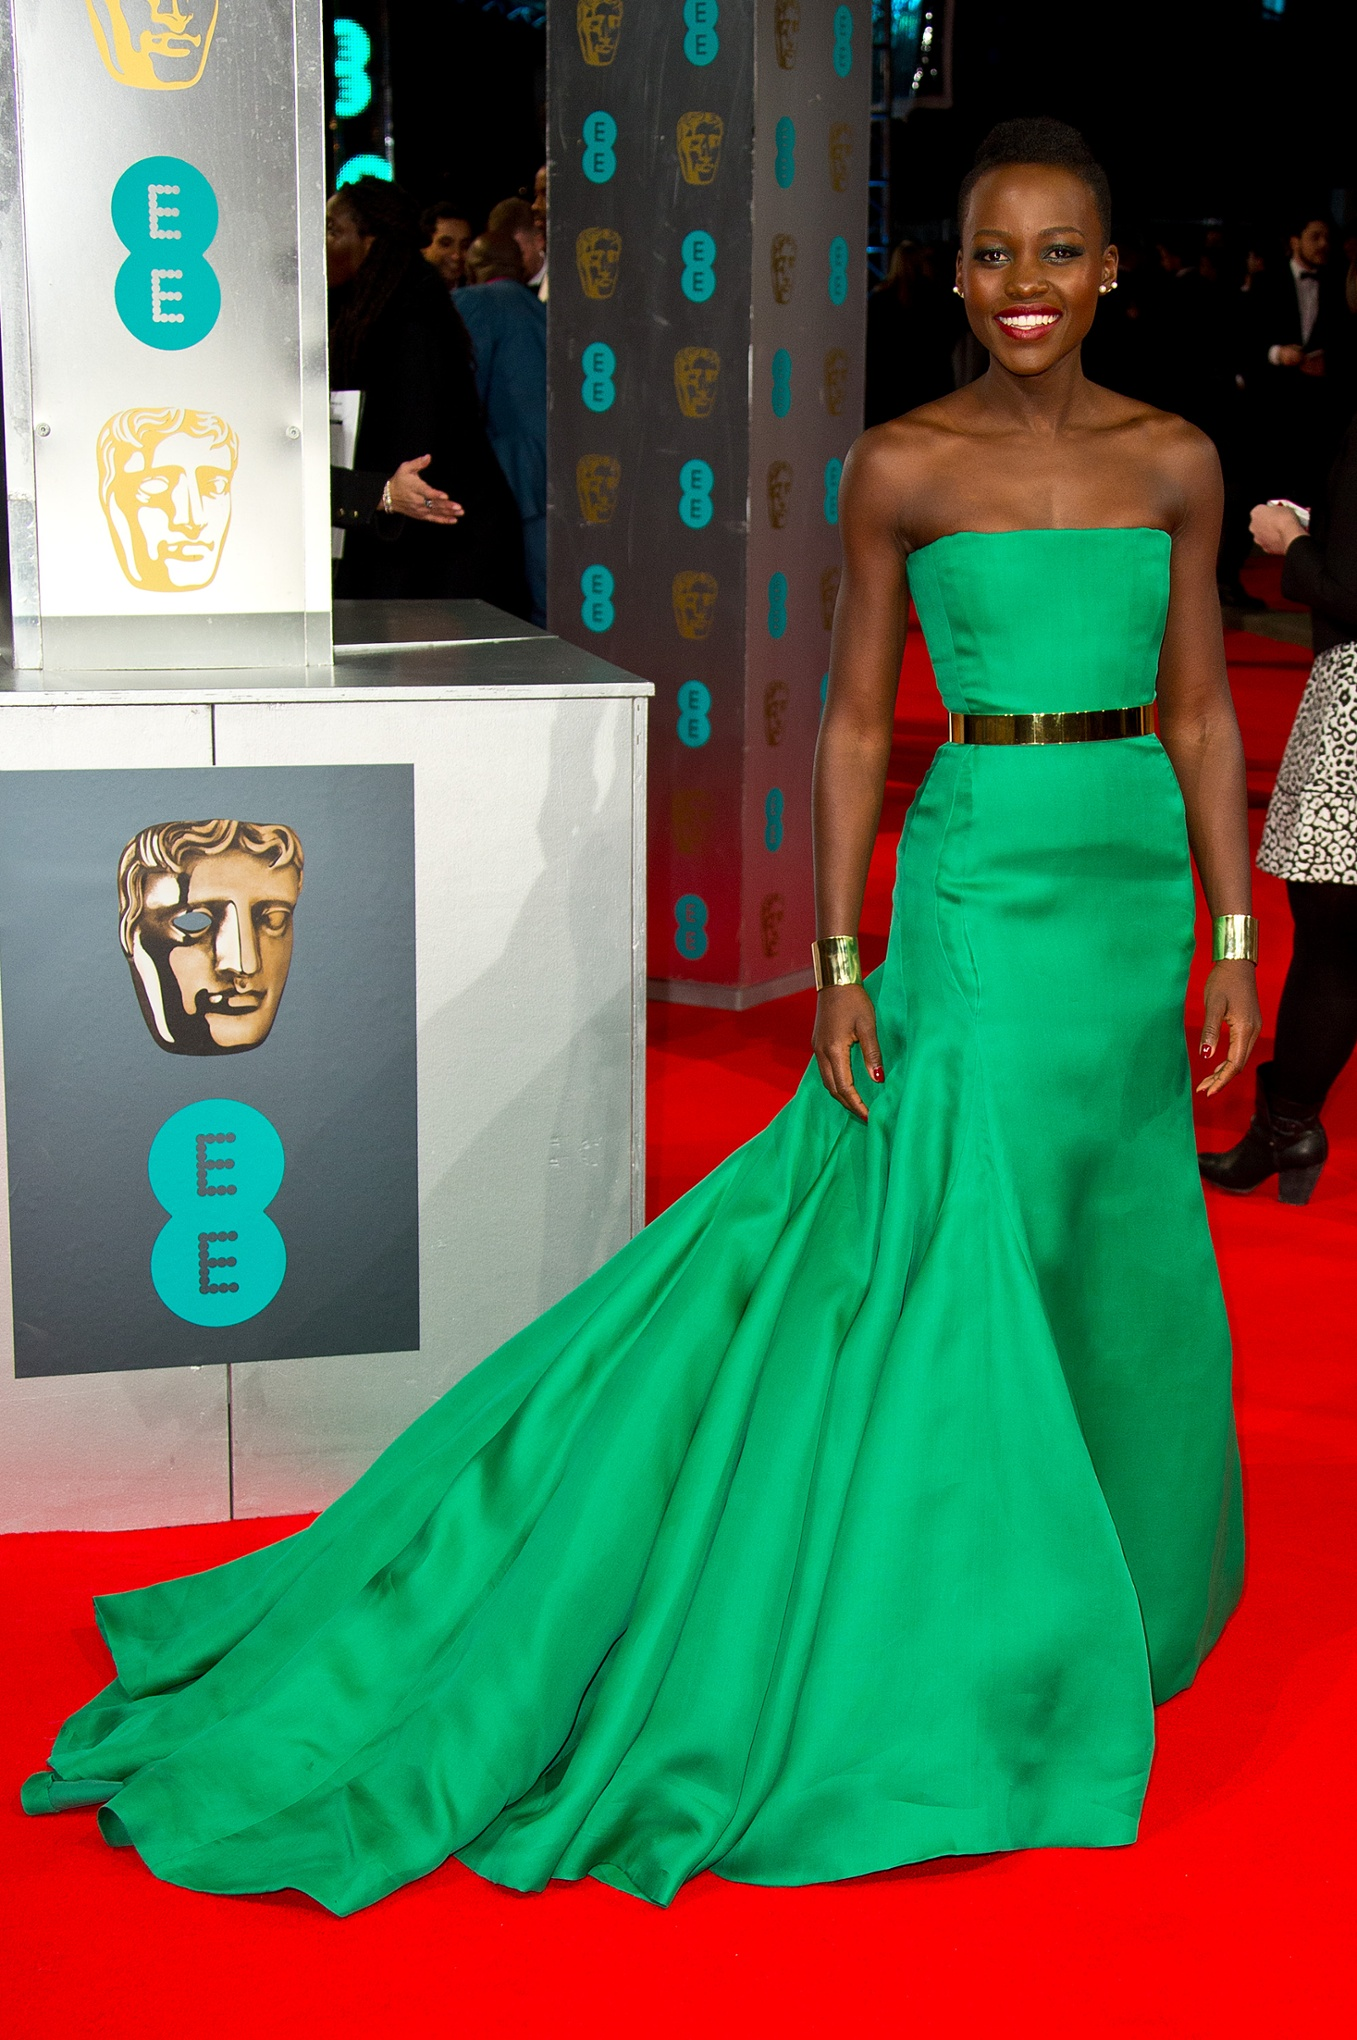 LONDON, ENGLAND - FEBRUARY 16:  Lupita Nyong'o attends the EE British Academy Film Awards 2014 at The Royal Opera House on February 16, 2014 in London, England.  (Photo by Mike Marsland/WireImage) Award|BAFTA|BAFTA Awards|Celebrities|Film|Lupita Nyong'o lupita14